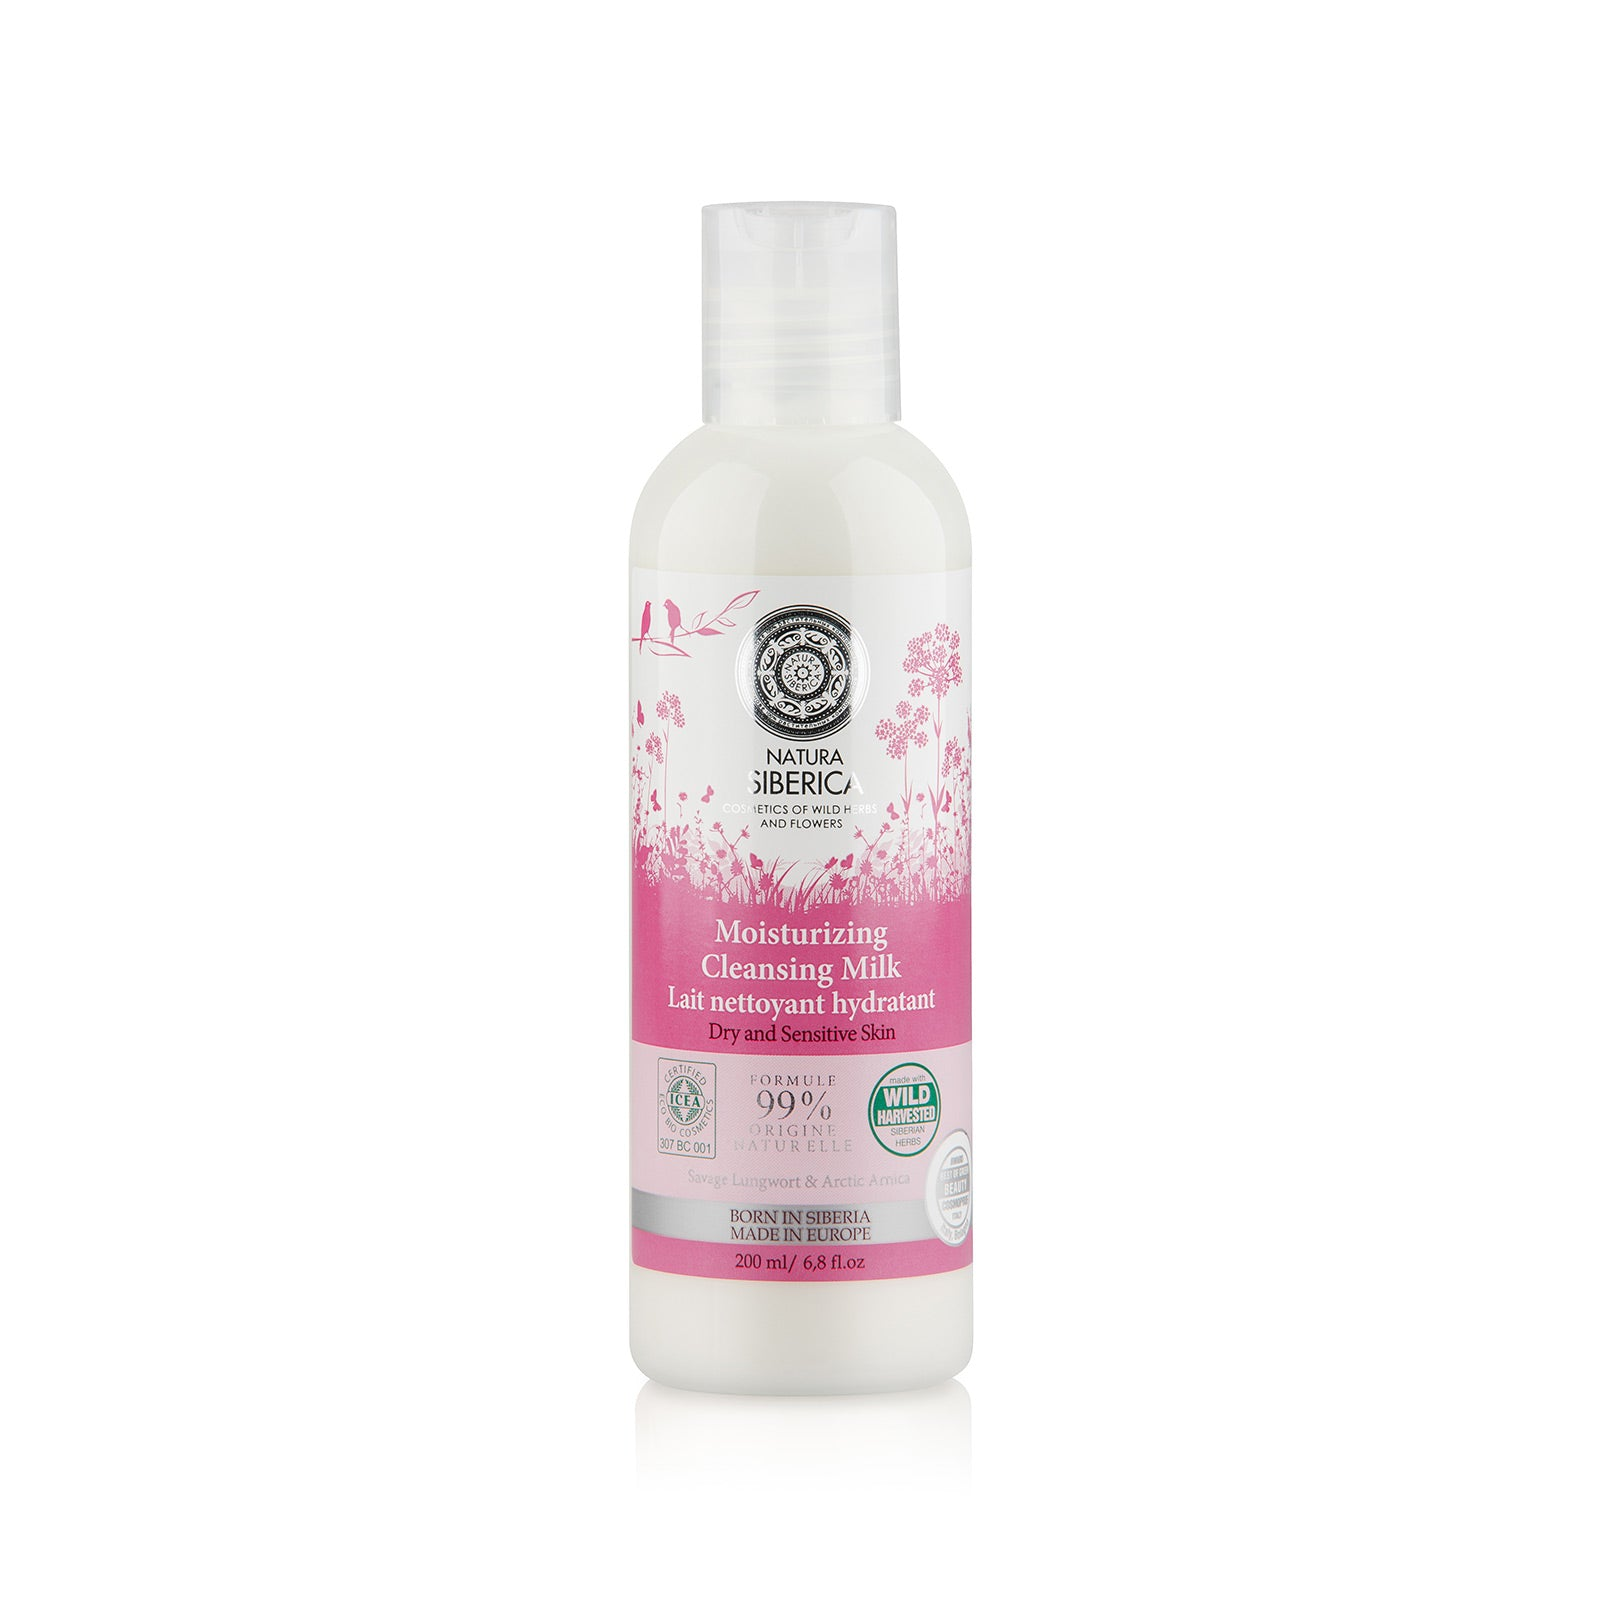 Moisturizing Cleansing Milk, 200 ml